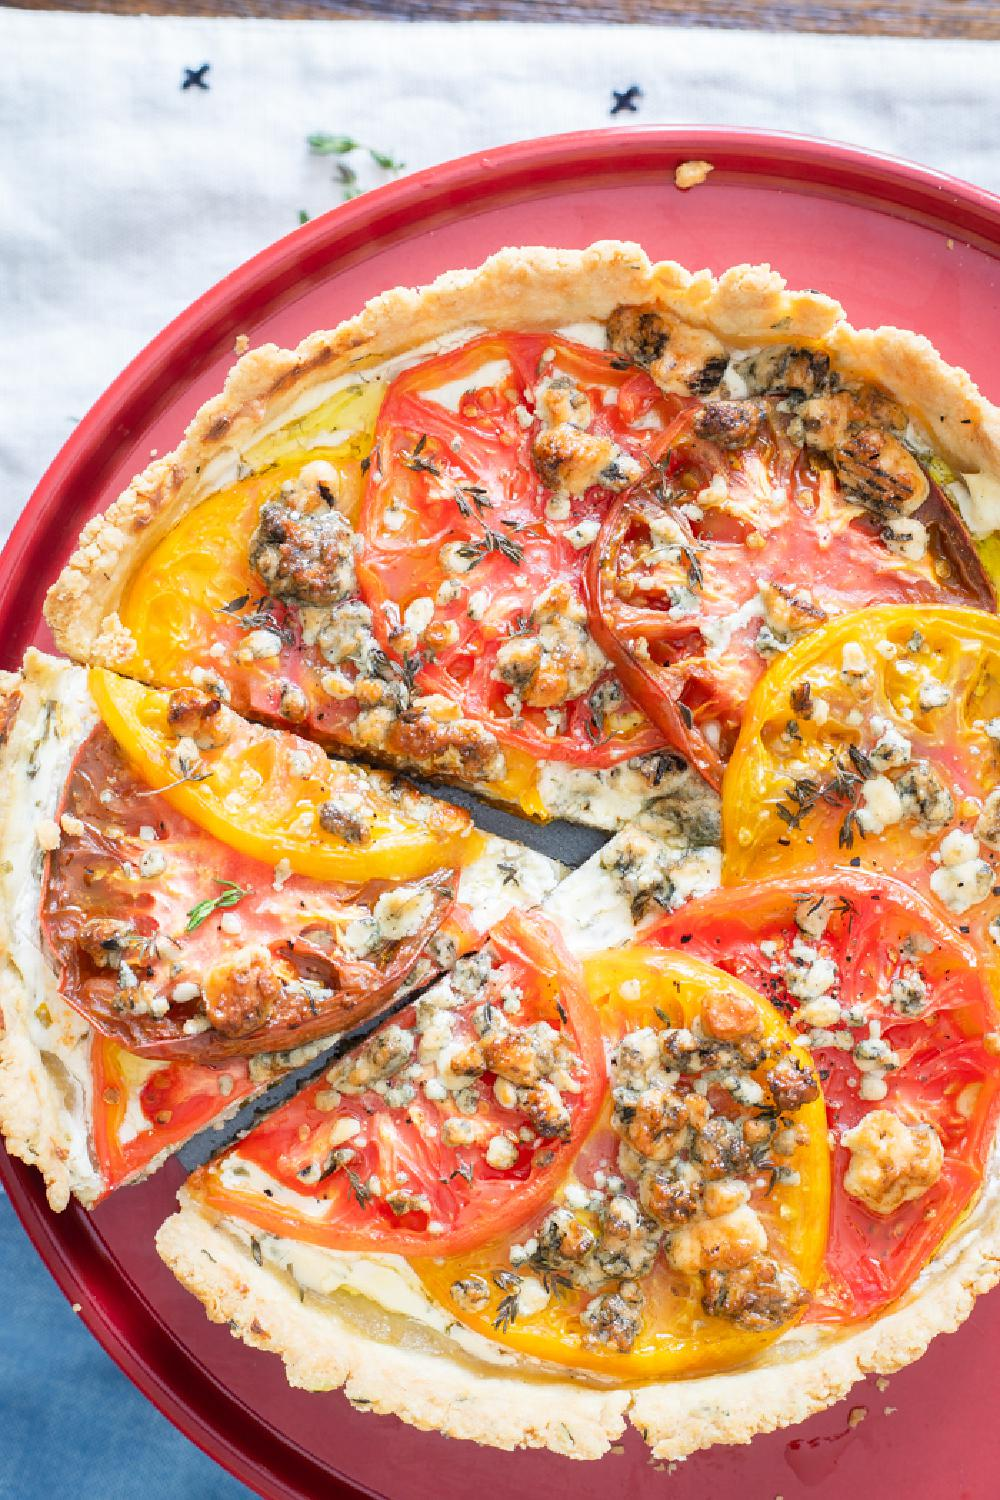 Heirloom Tomato Tart, Homemade crust topped with cream cheese spread, heirloom tomatoes, and gorgonzola cheese! #recipe from thissillygirlskitchen.com #tomato #tart #tomatotart #heirloomtomatotart